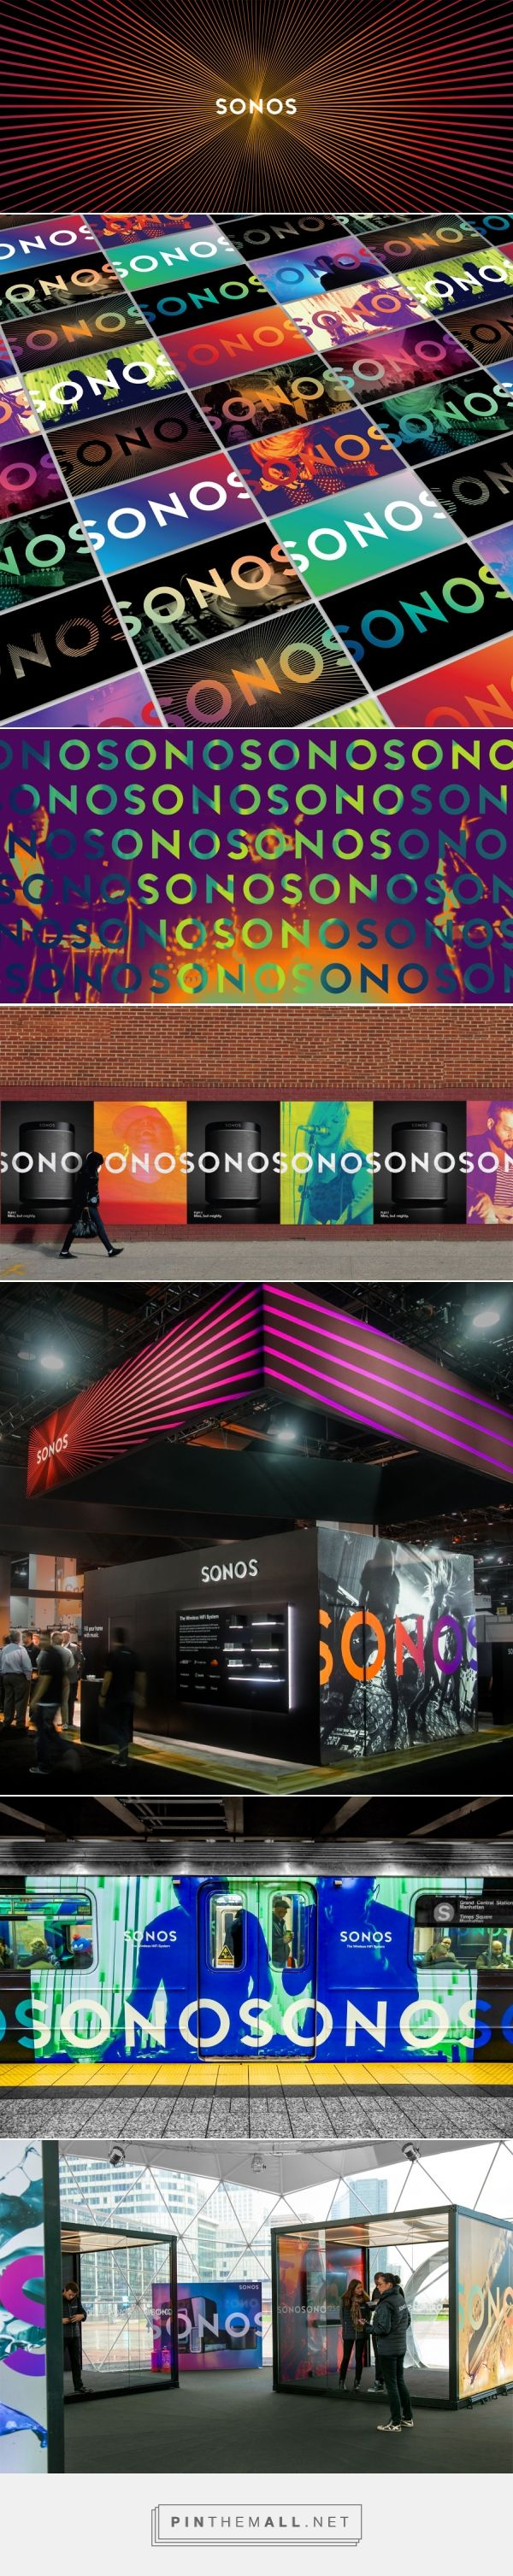 Brand New: New Identity for Sonos by Bruce Mau Design // http://www.underconsideration.com/brandnew/archives/new_identity_for_sonos_by_bruce_mau_design.php#.VMI5i4rF9Cs